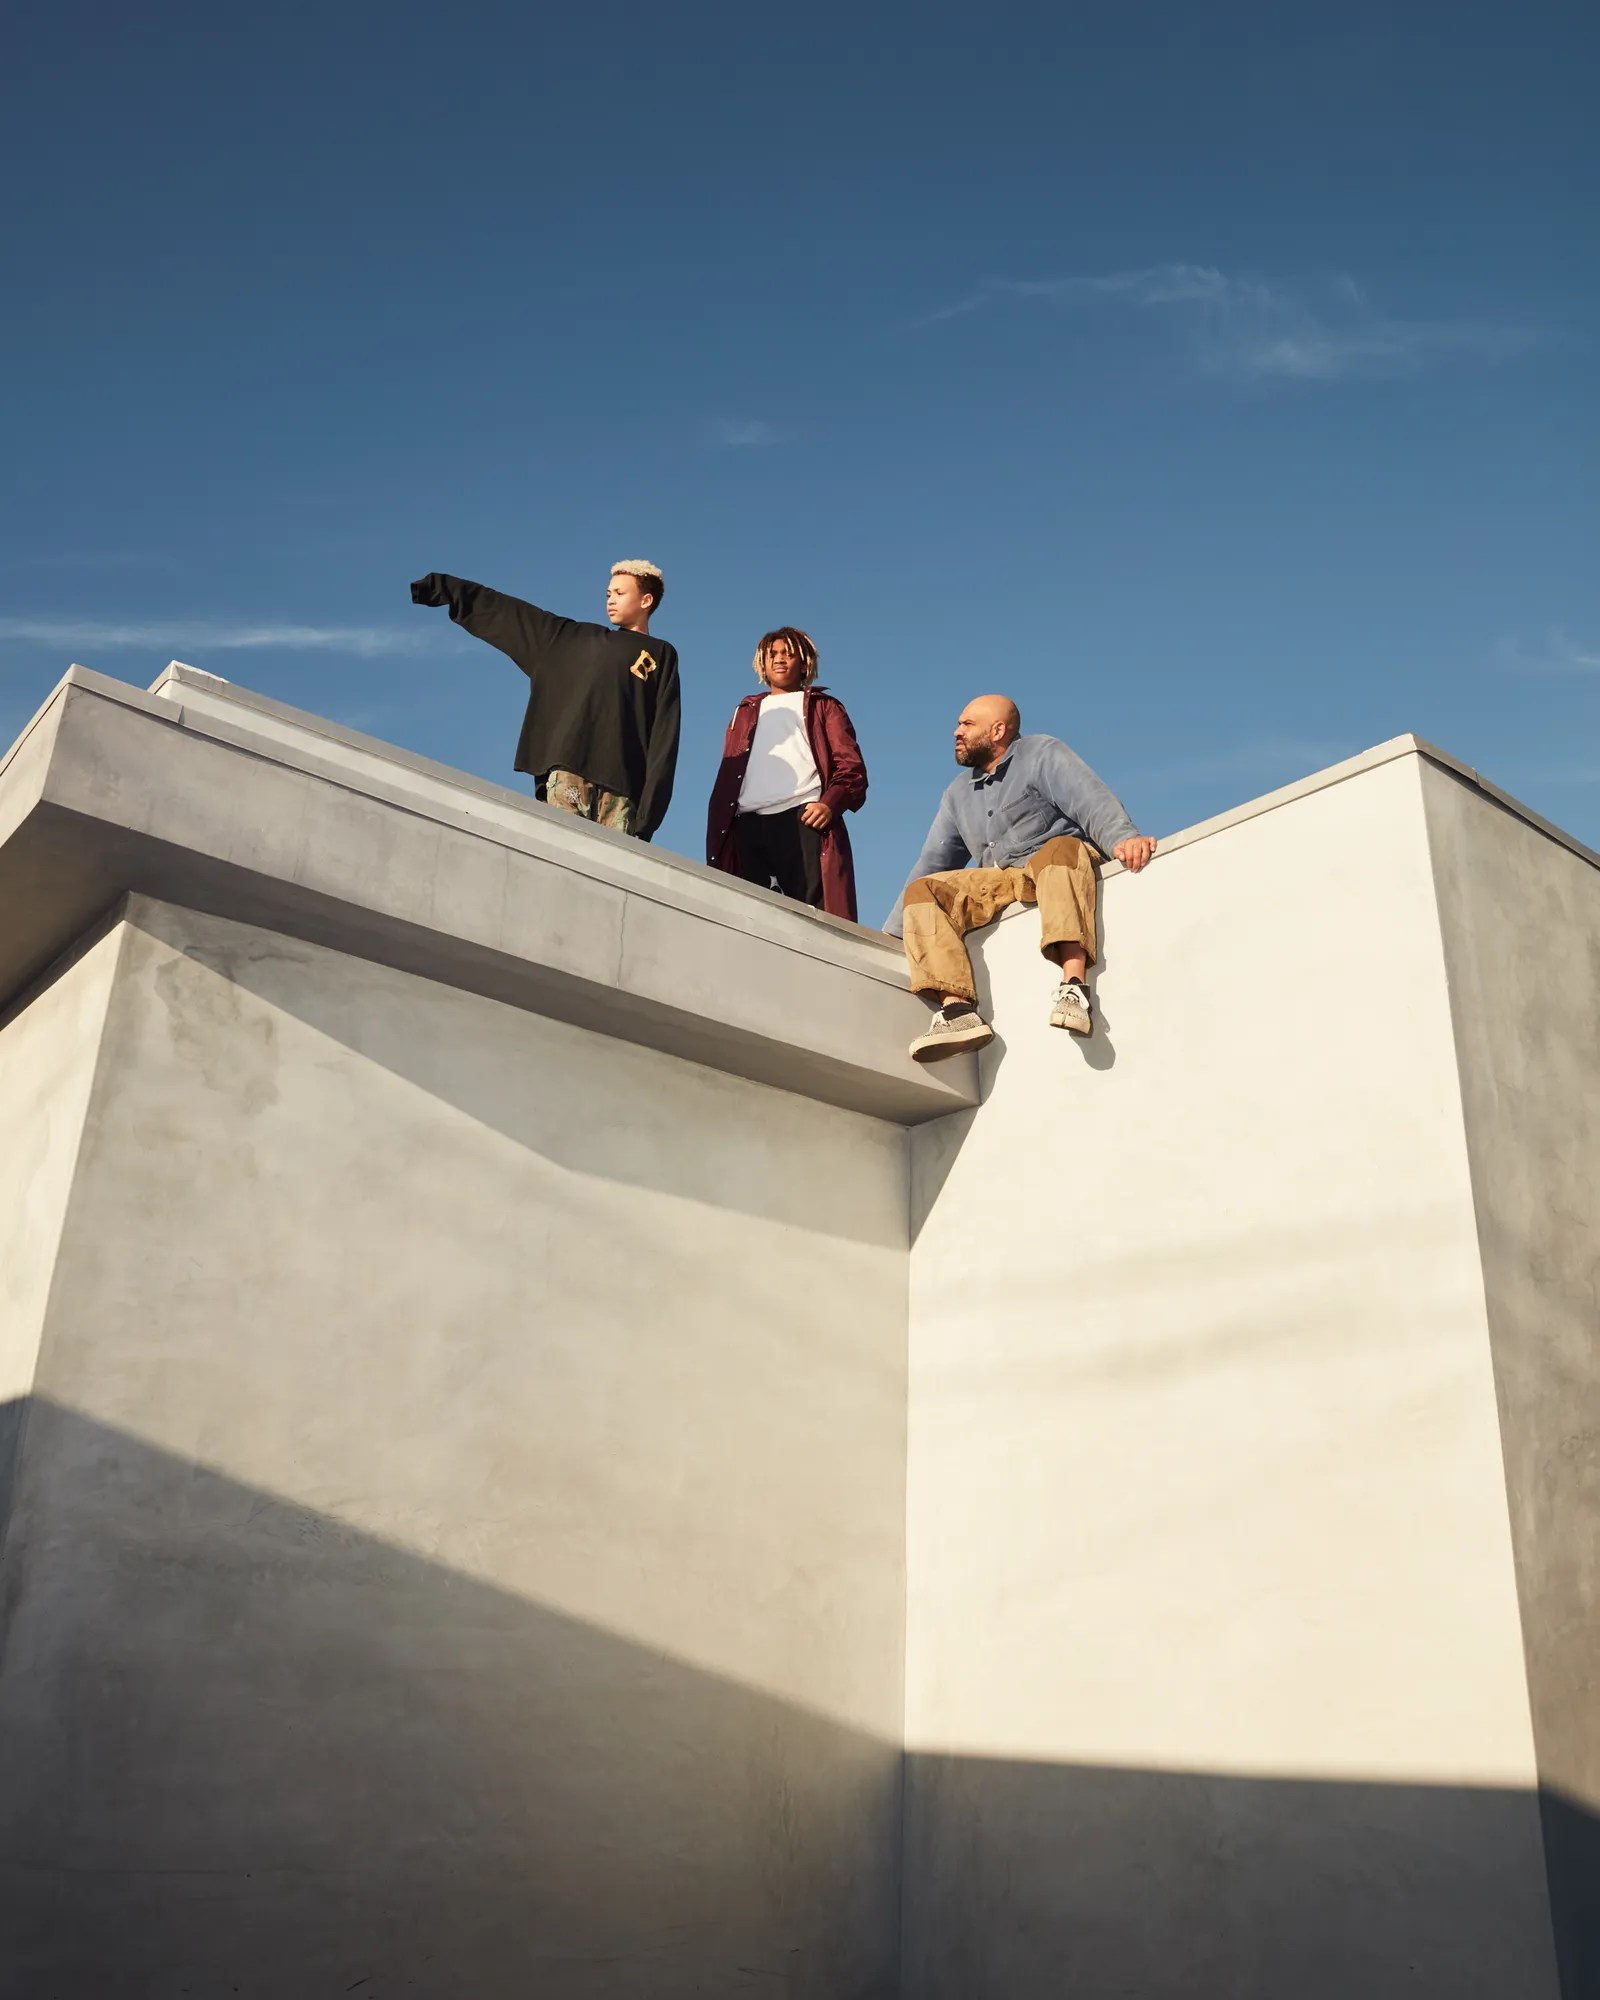 chris gibbs sitting on the roof with his sons